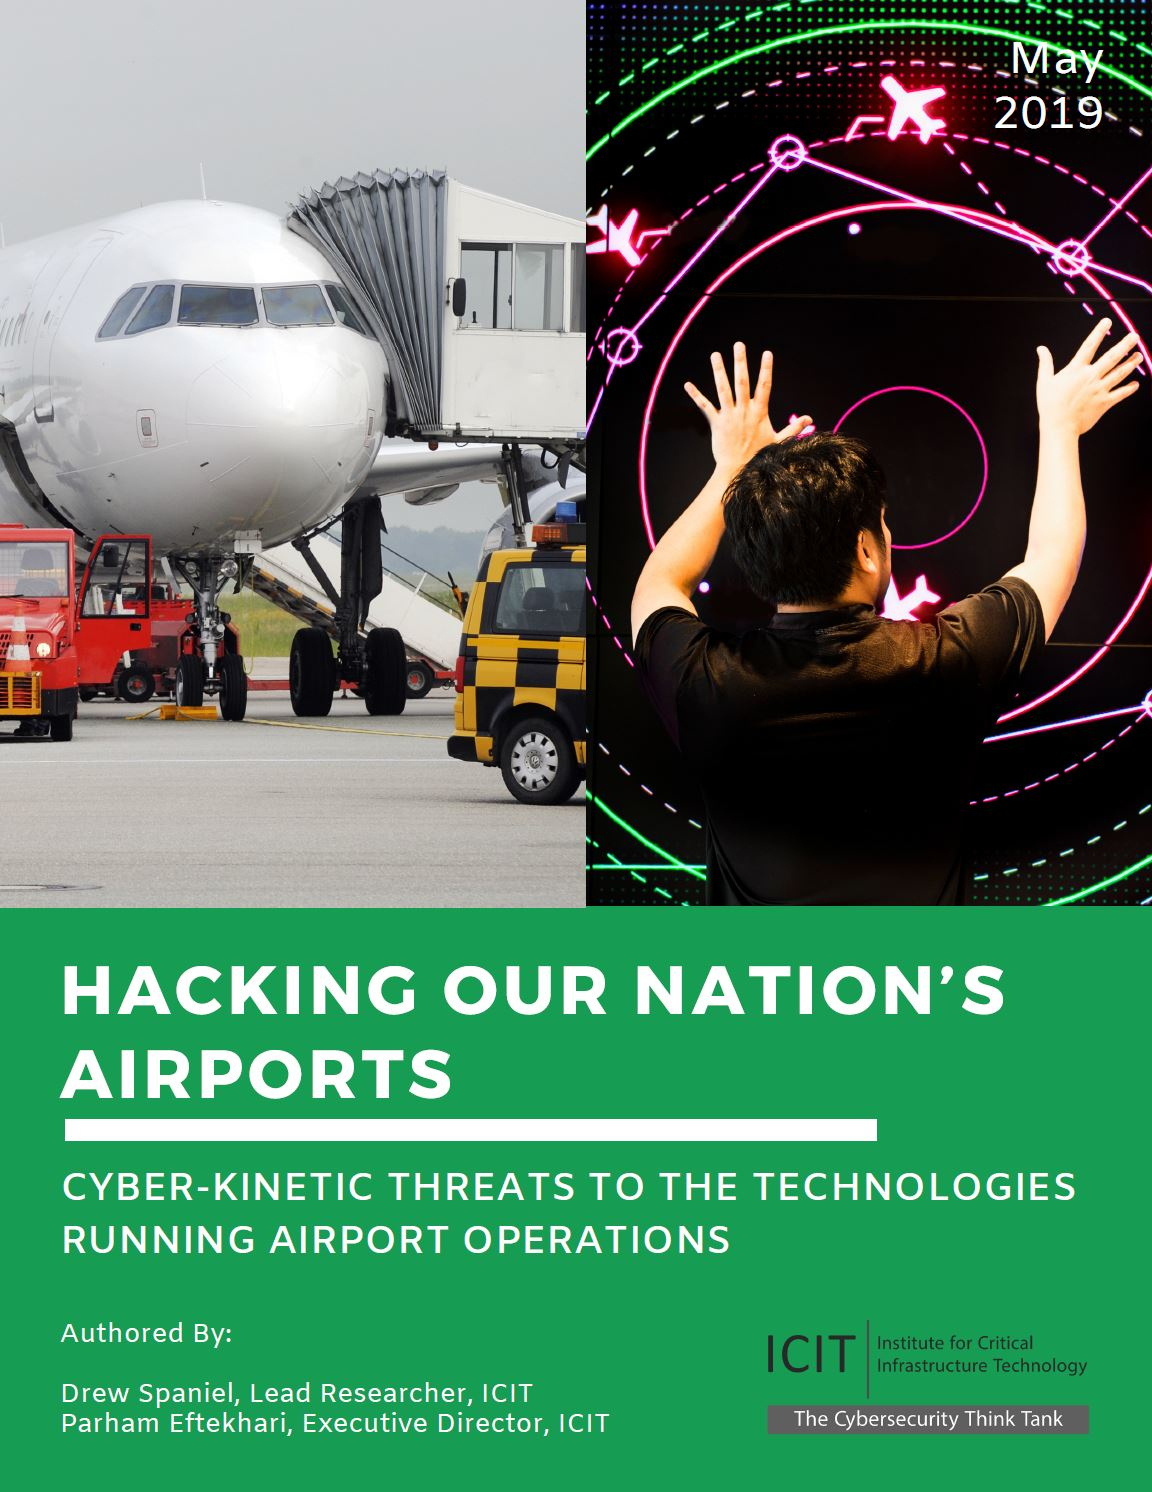 ICIT Brief - Hacking Our Nations Airports